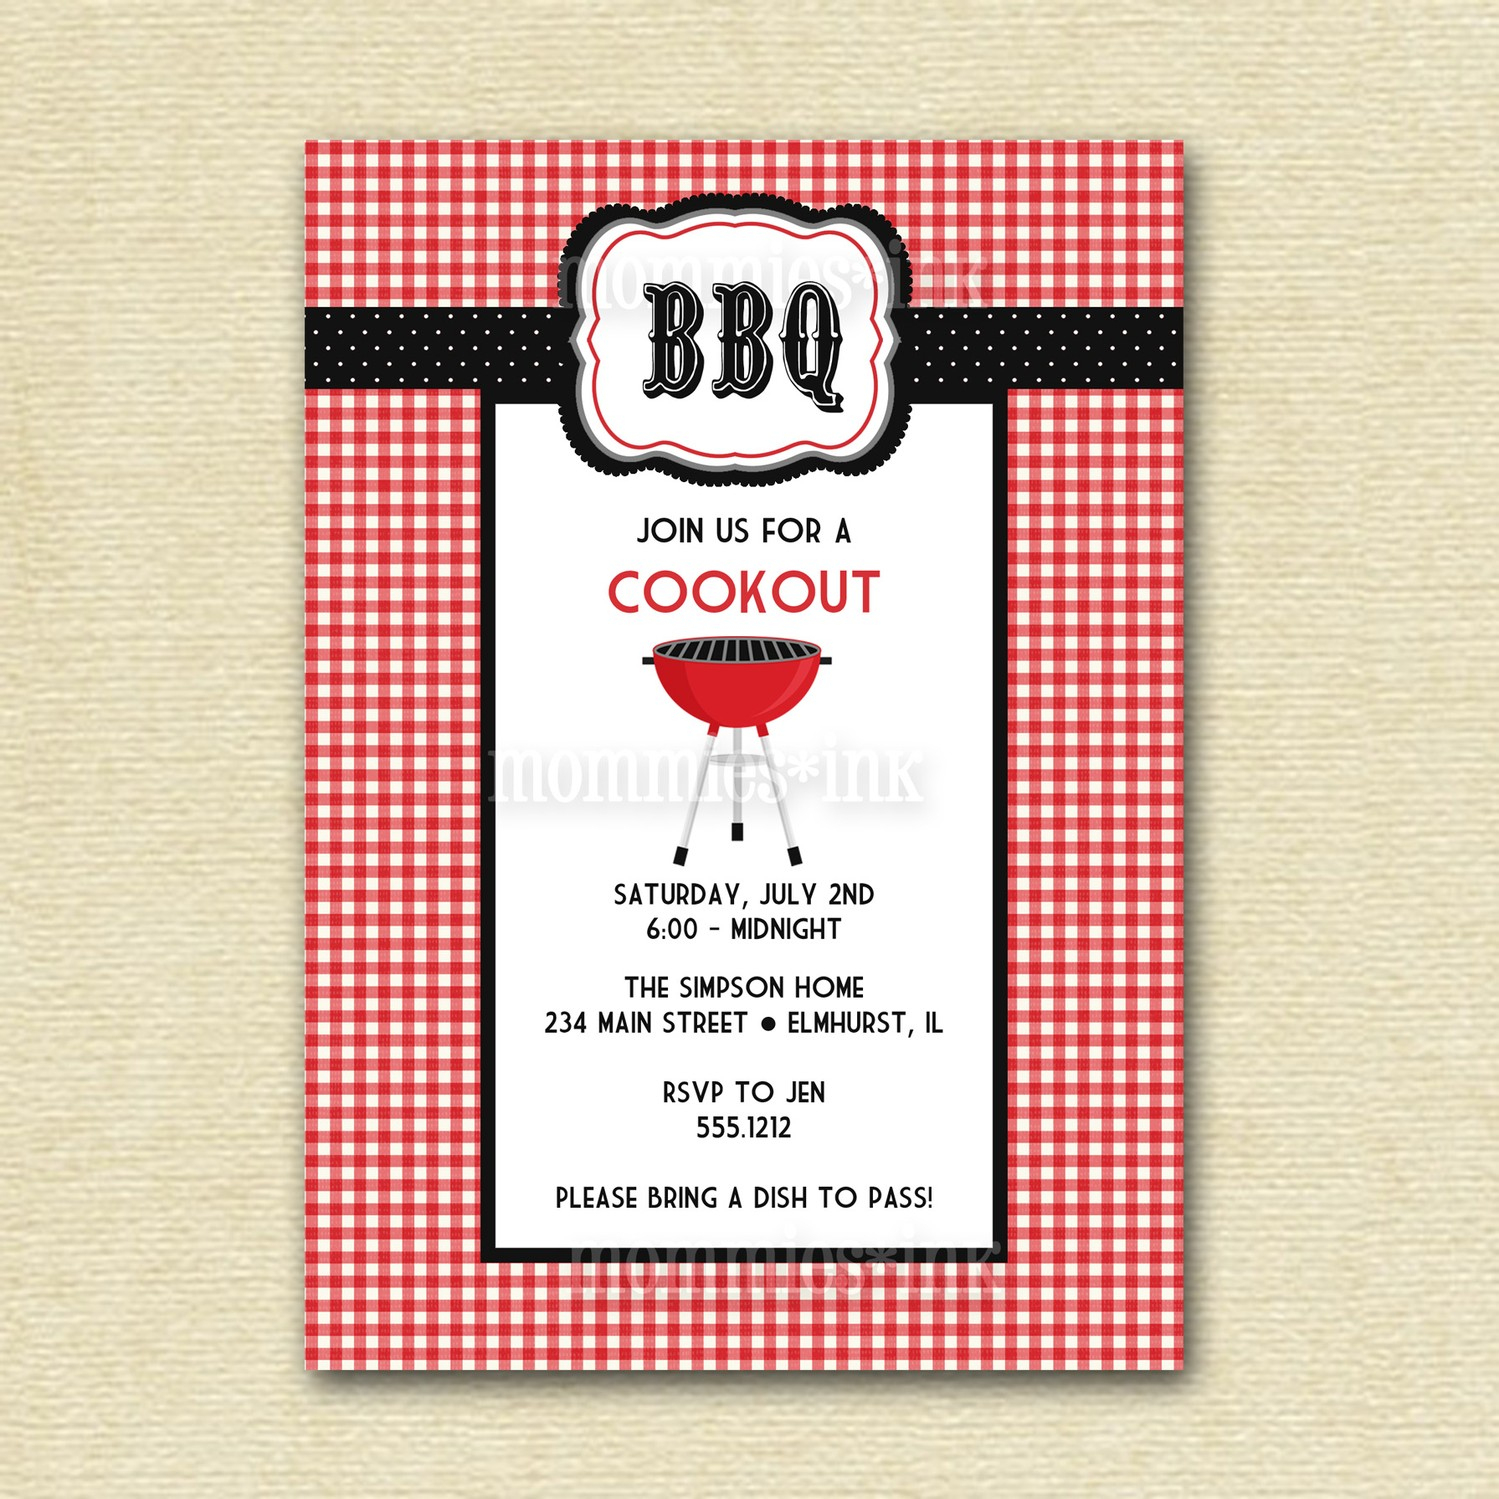 16 Free Printable Cookout Invitations Template Images - Free Cookout - Free Printable Cookout Invitations